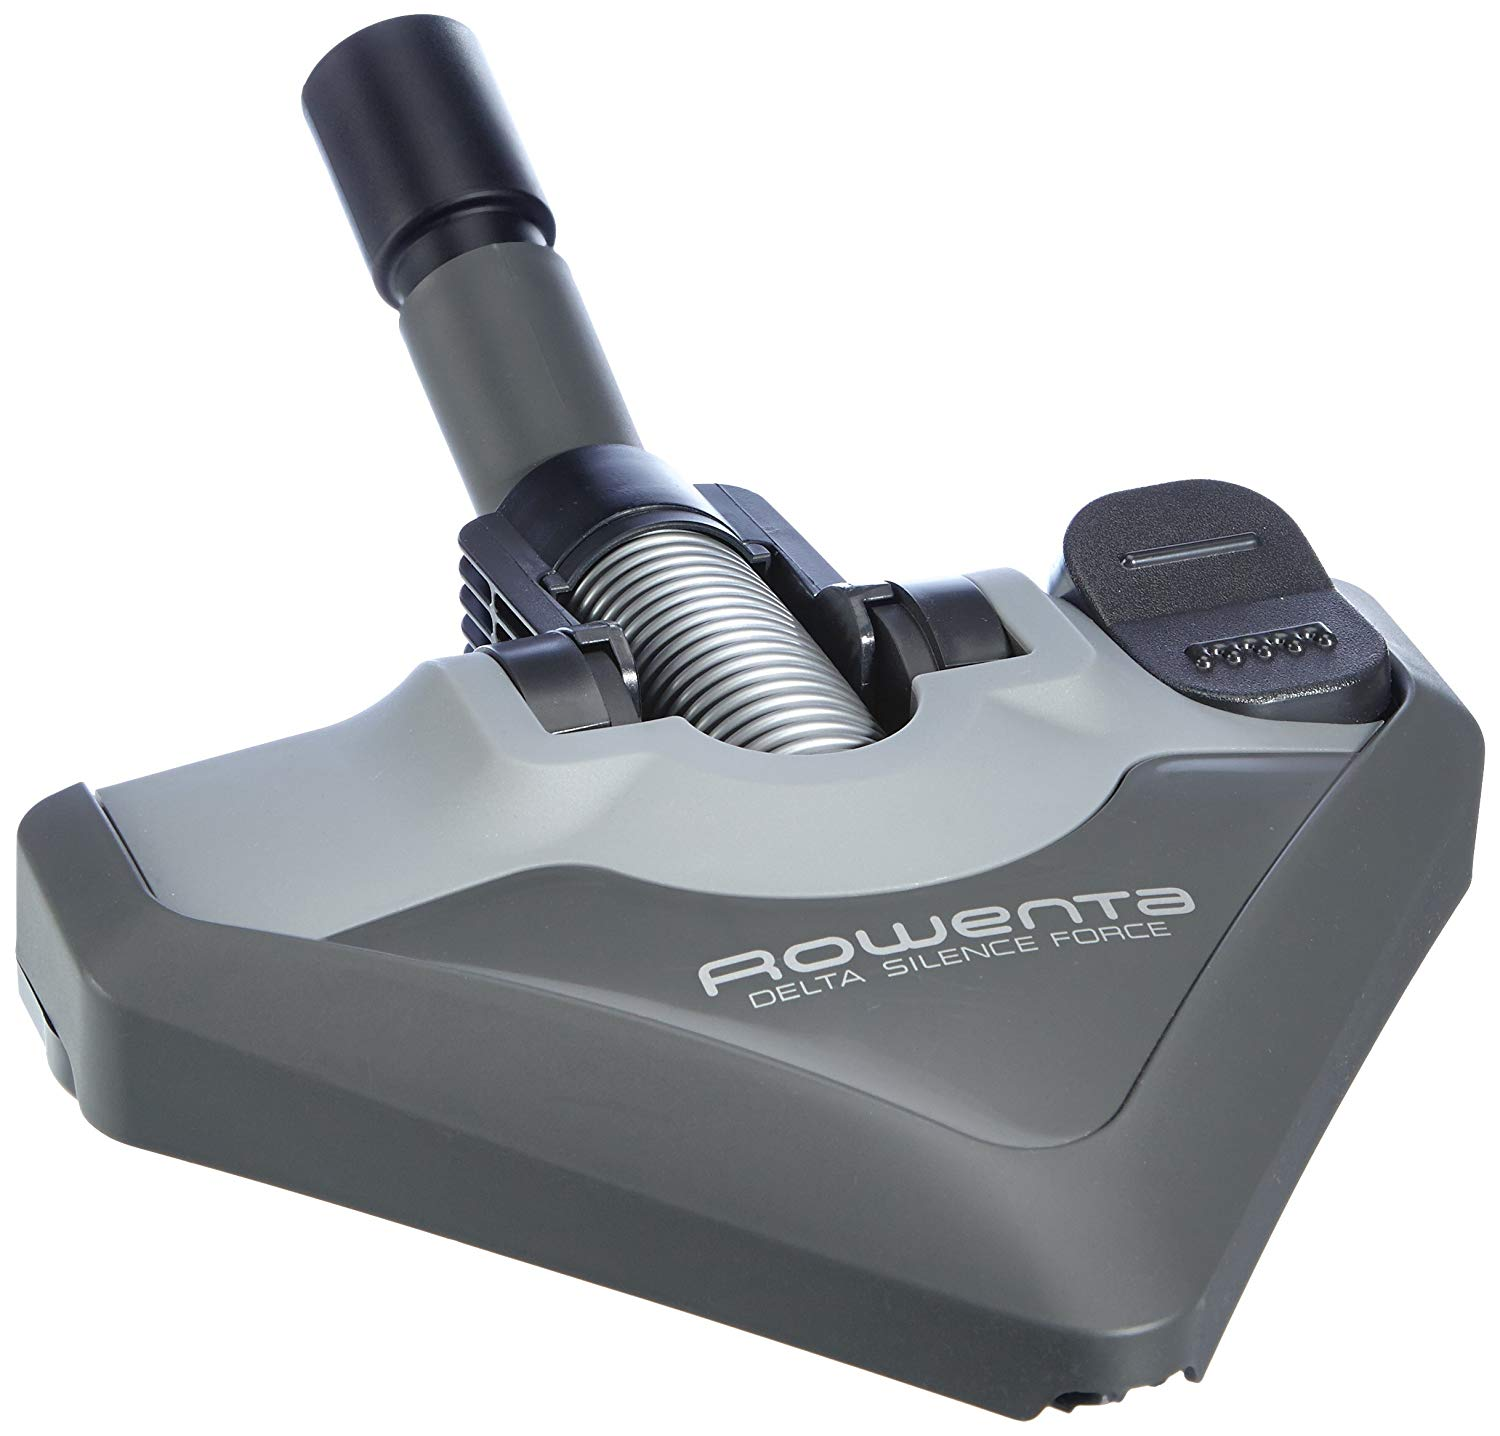 brosse pour aspirateur rowenta silence force